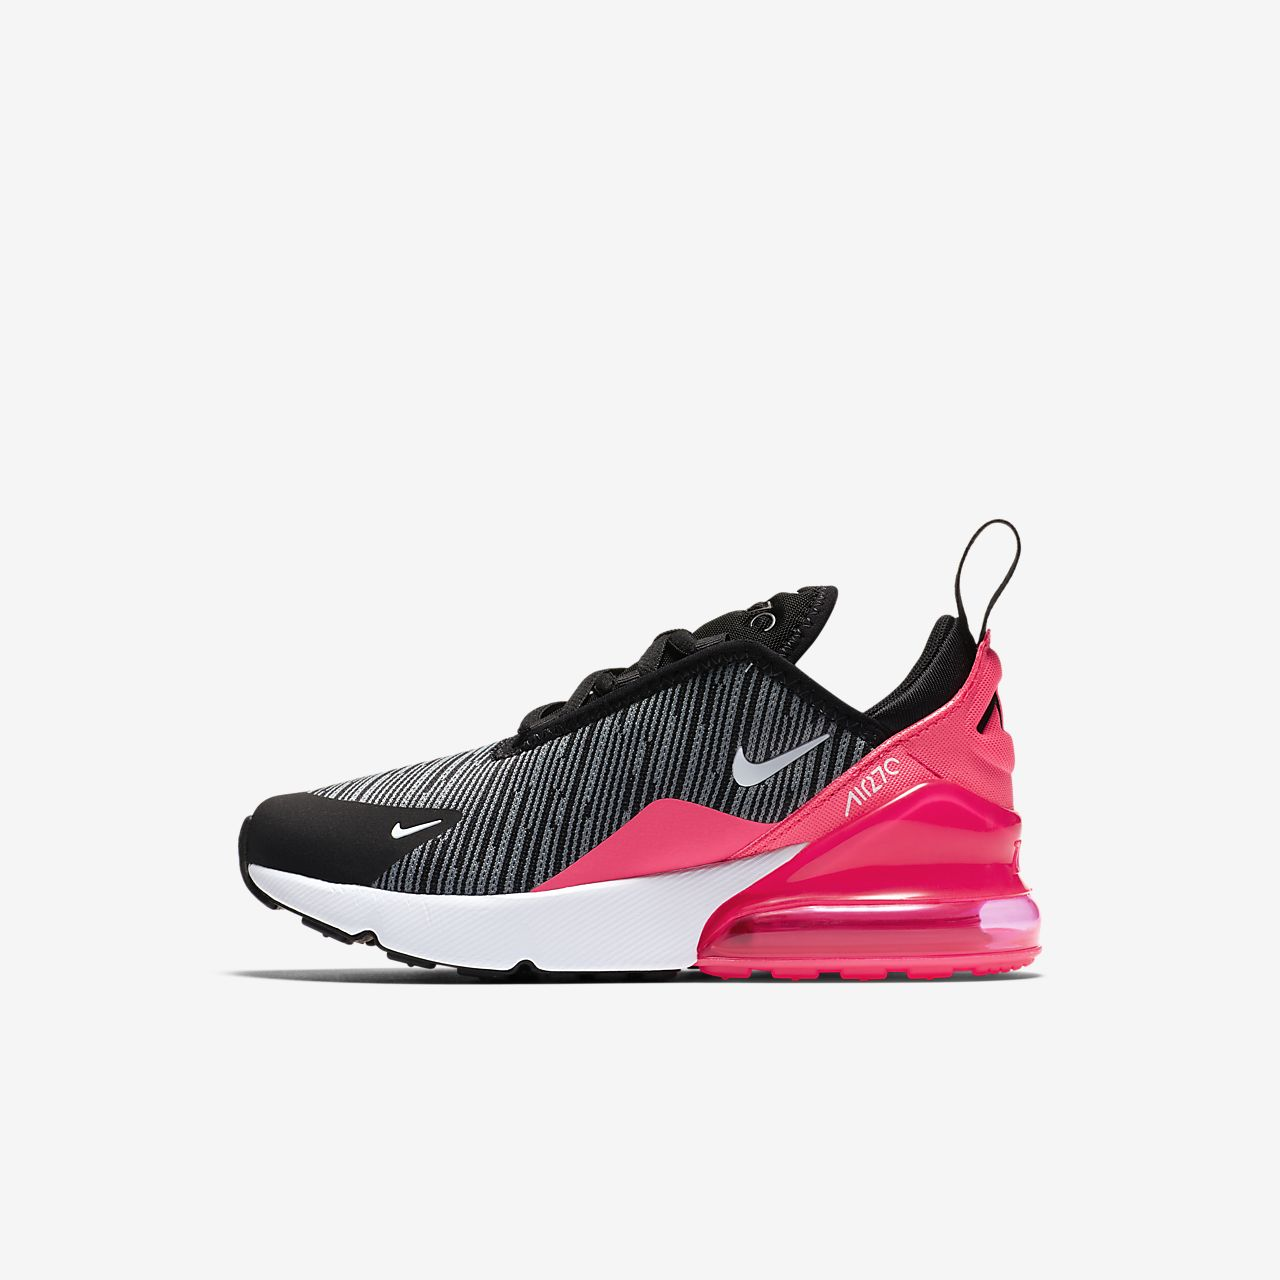 1c4062a83630 real nike nike air max 270 sneakers in pink 1598d 2a096